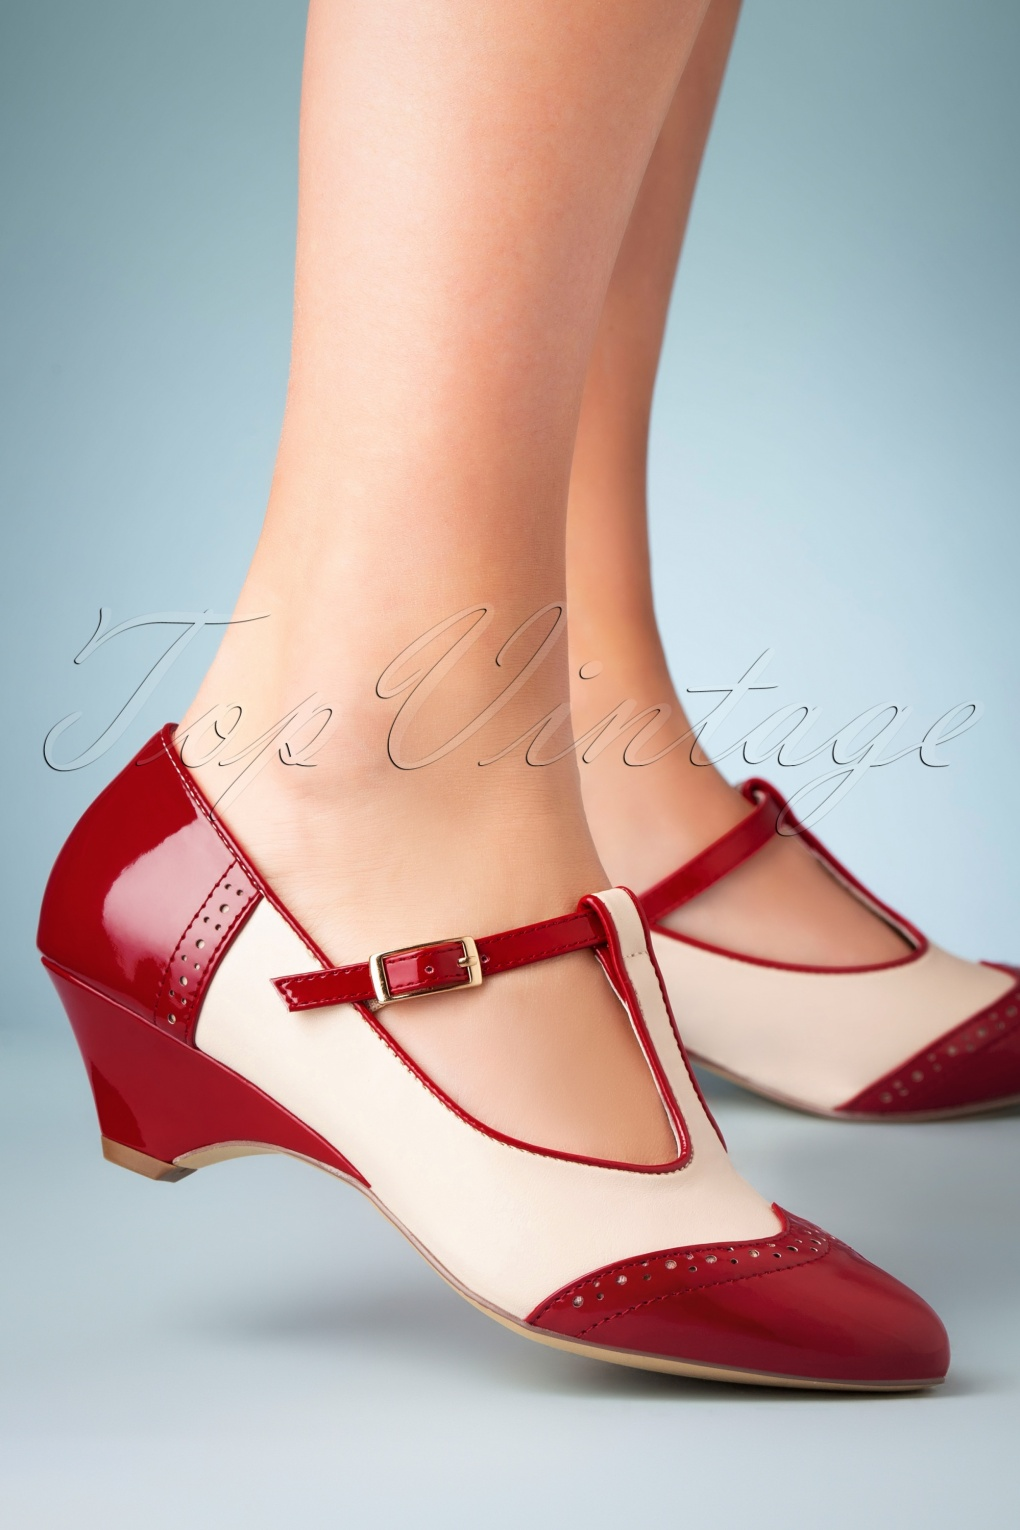 Vintage Shoes, Vintage Style Shoes 50s Ione Spectator T-Strap Pump in Red and White £63.26 AT vintagedancer.com